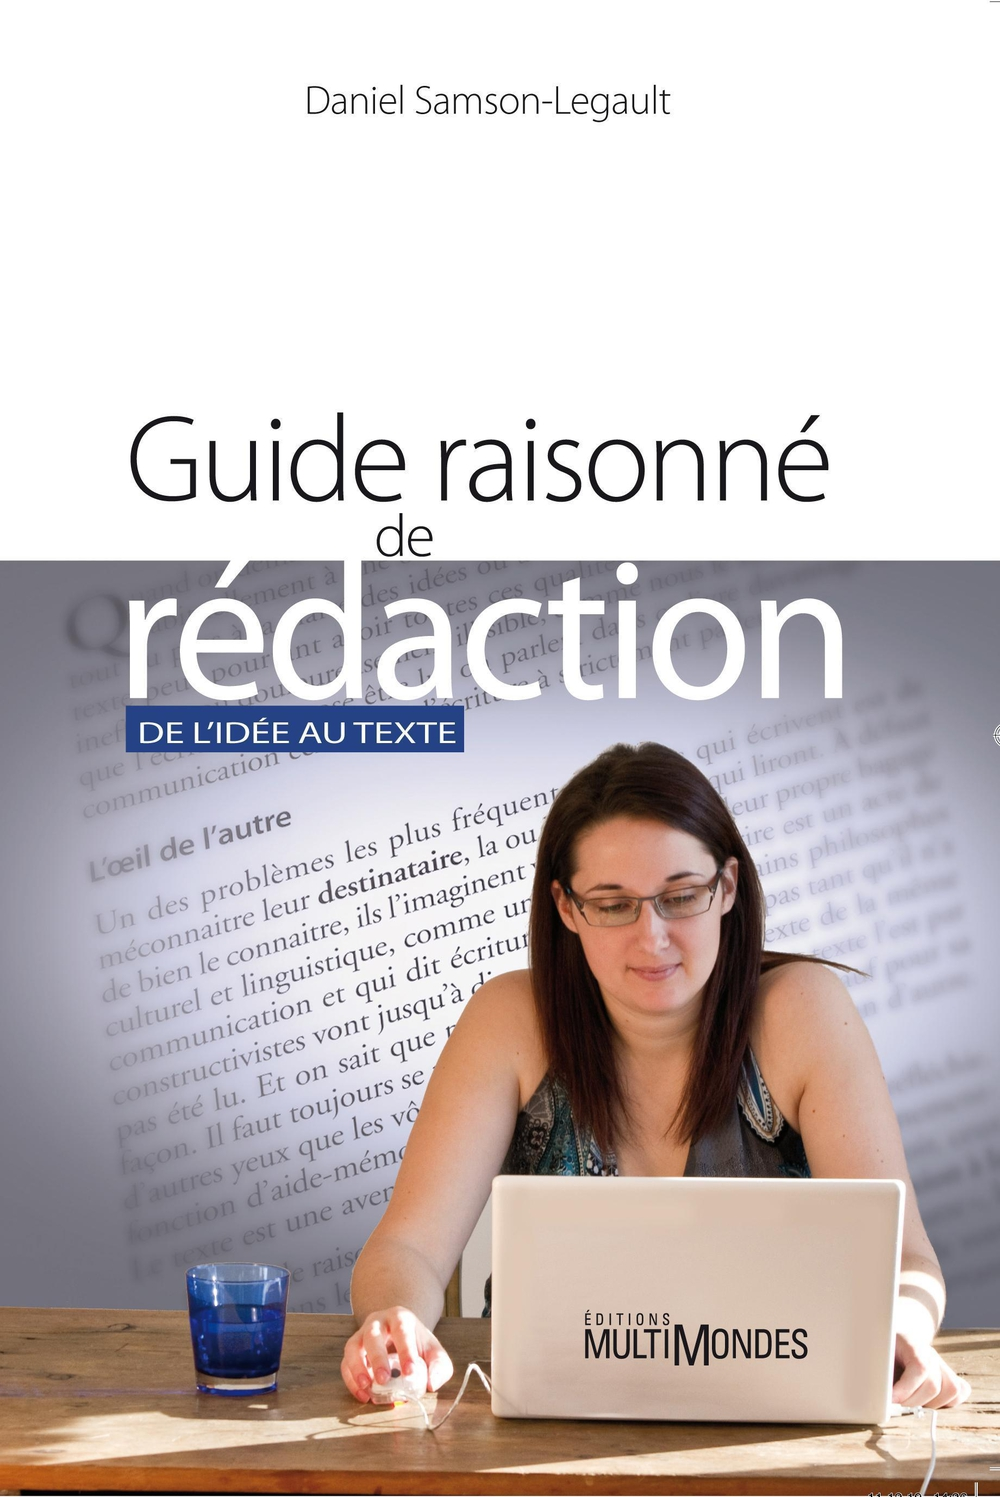 Guide raisonné de rédaction By: Daniel Samson-Legault